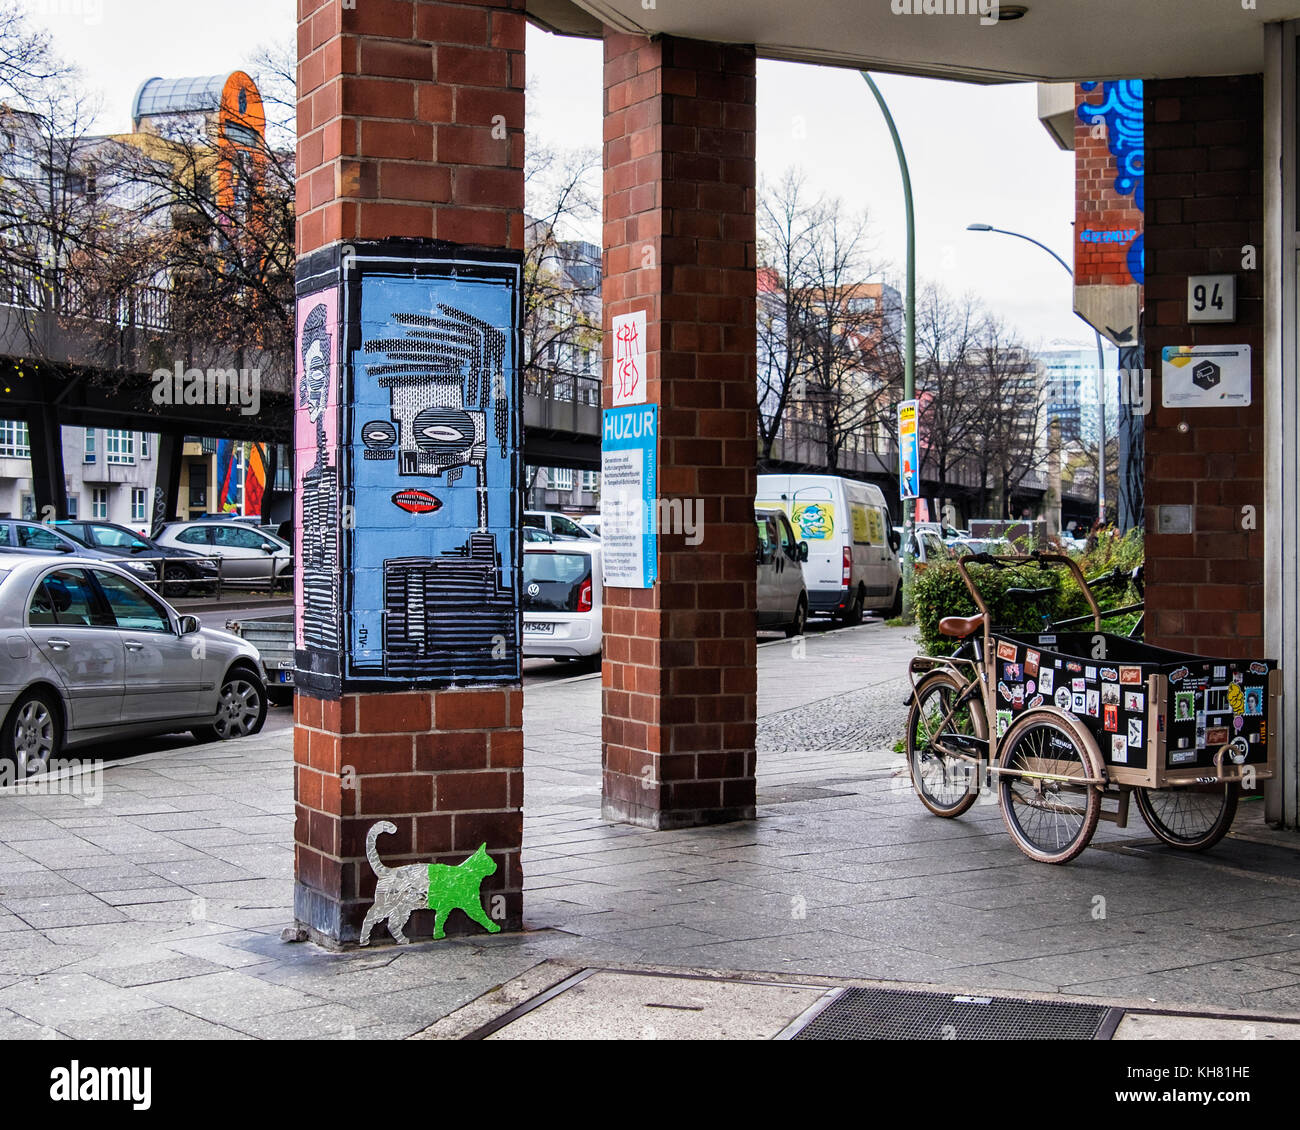 Berlin-Schönebergt.Huzur Neighbourhood meeting place for the elderly.Colourful entrance with street art. Abstract - Stock Image